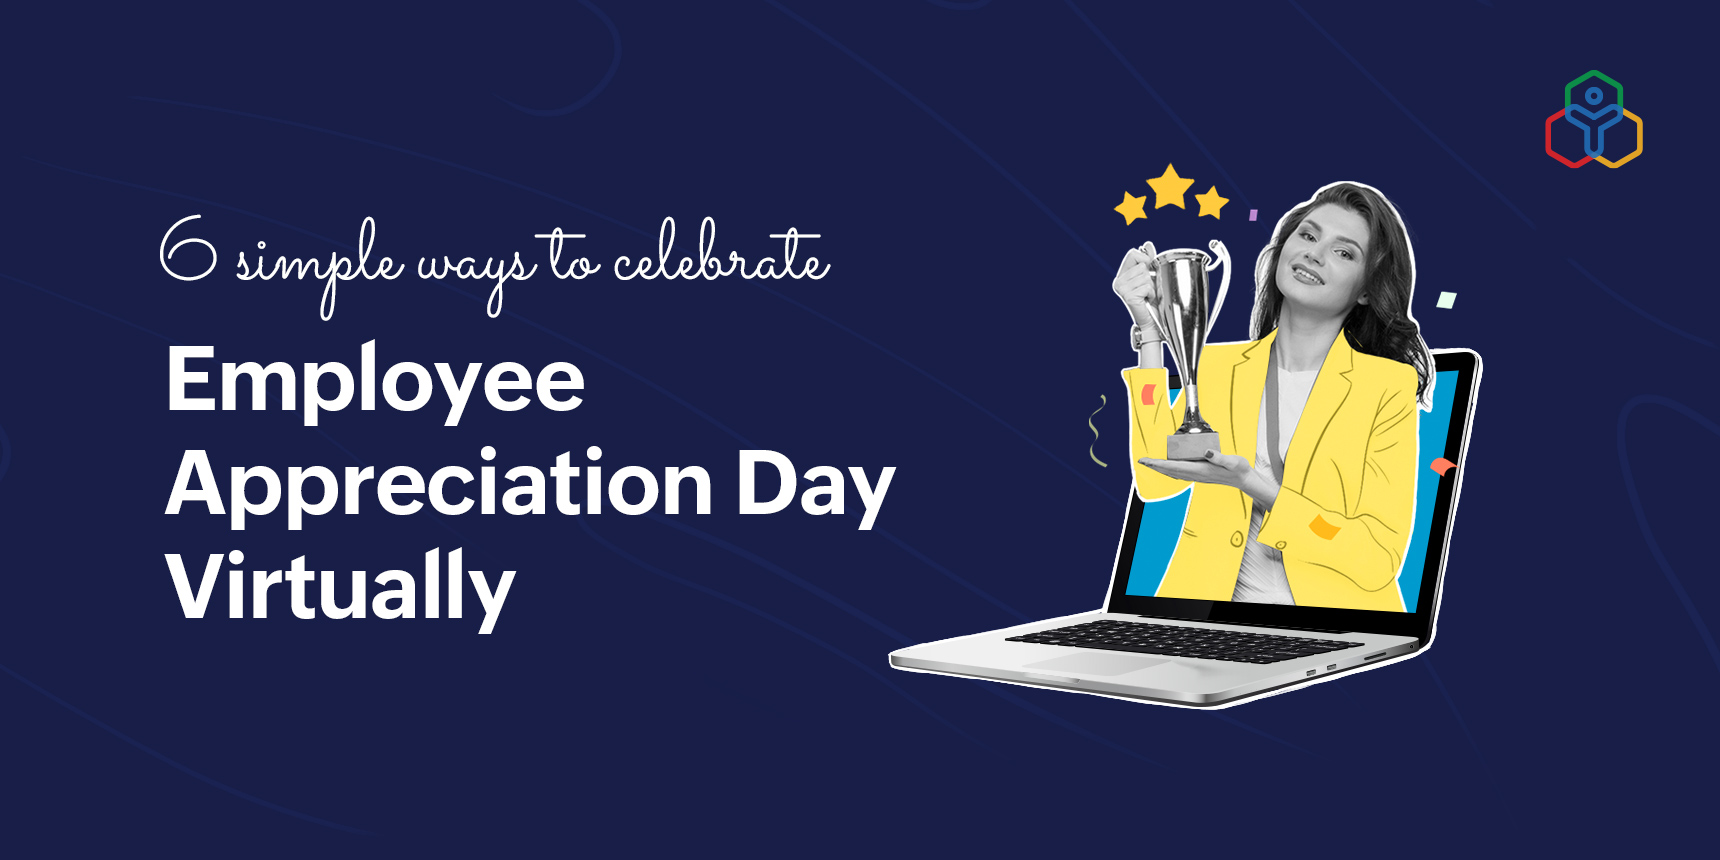 6 ways to celebrate Employee Appreciation Day virtually